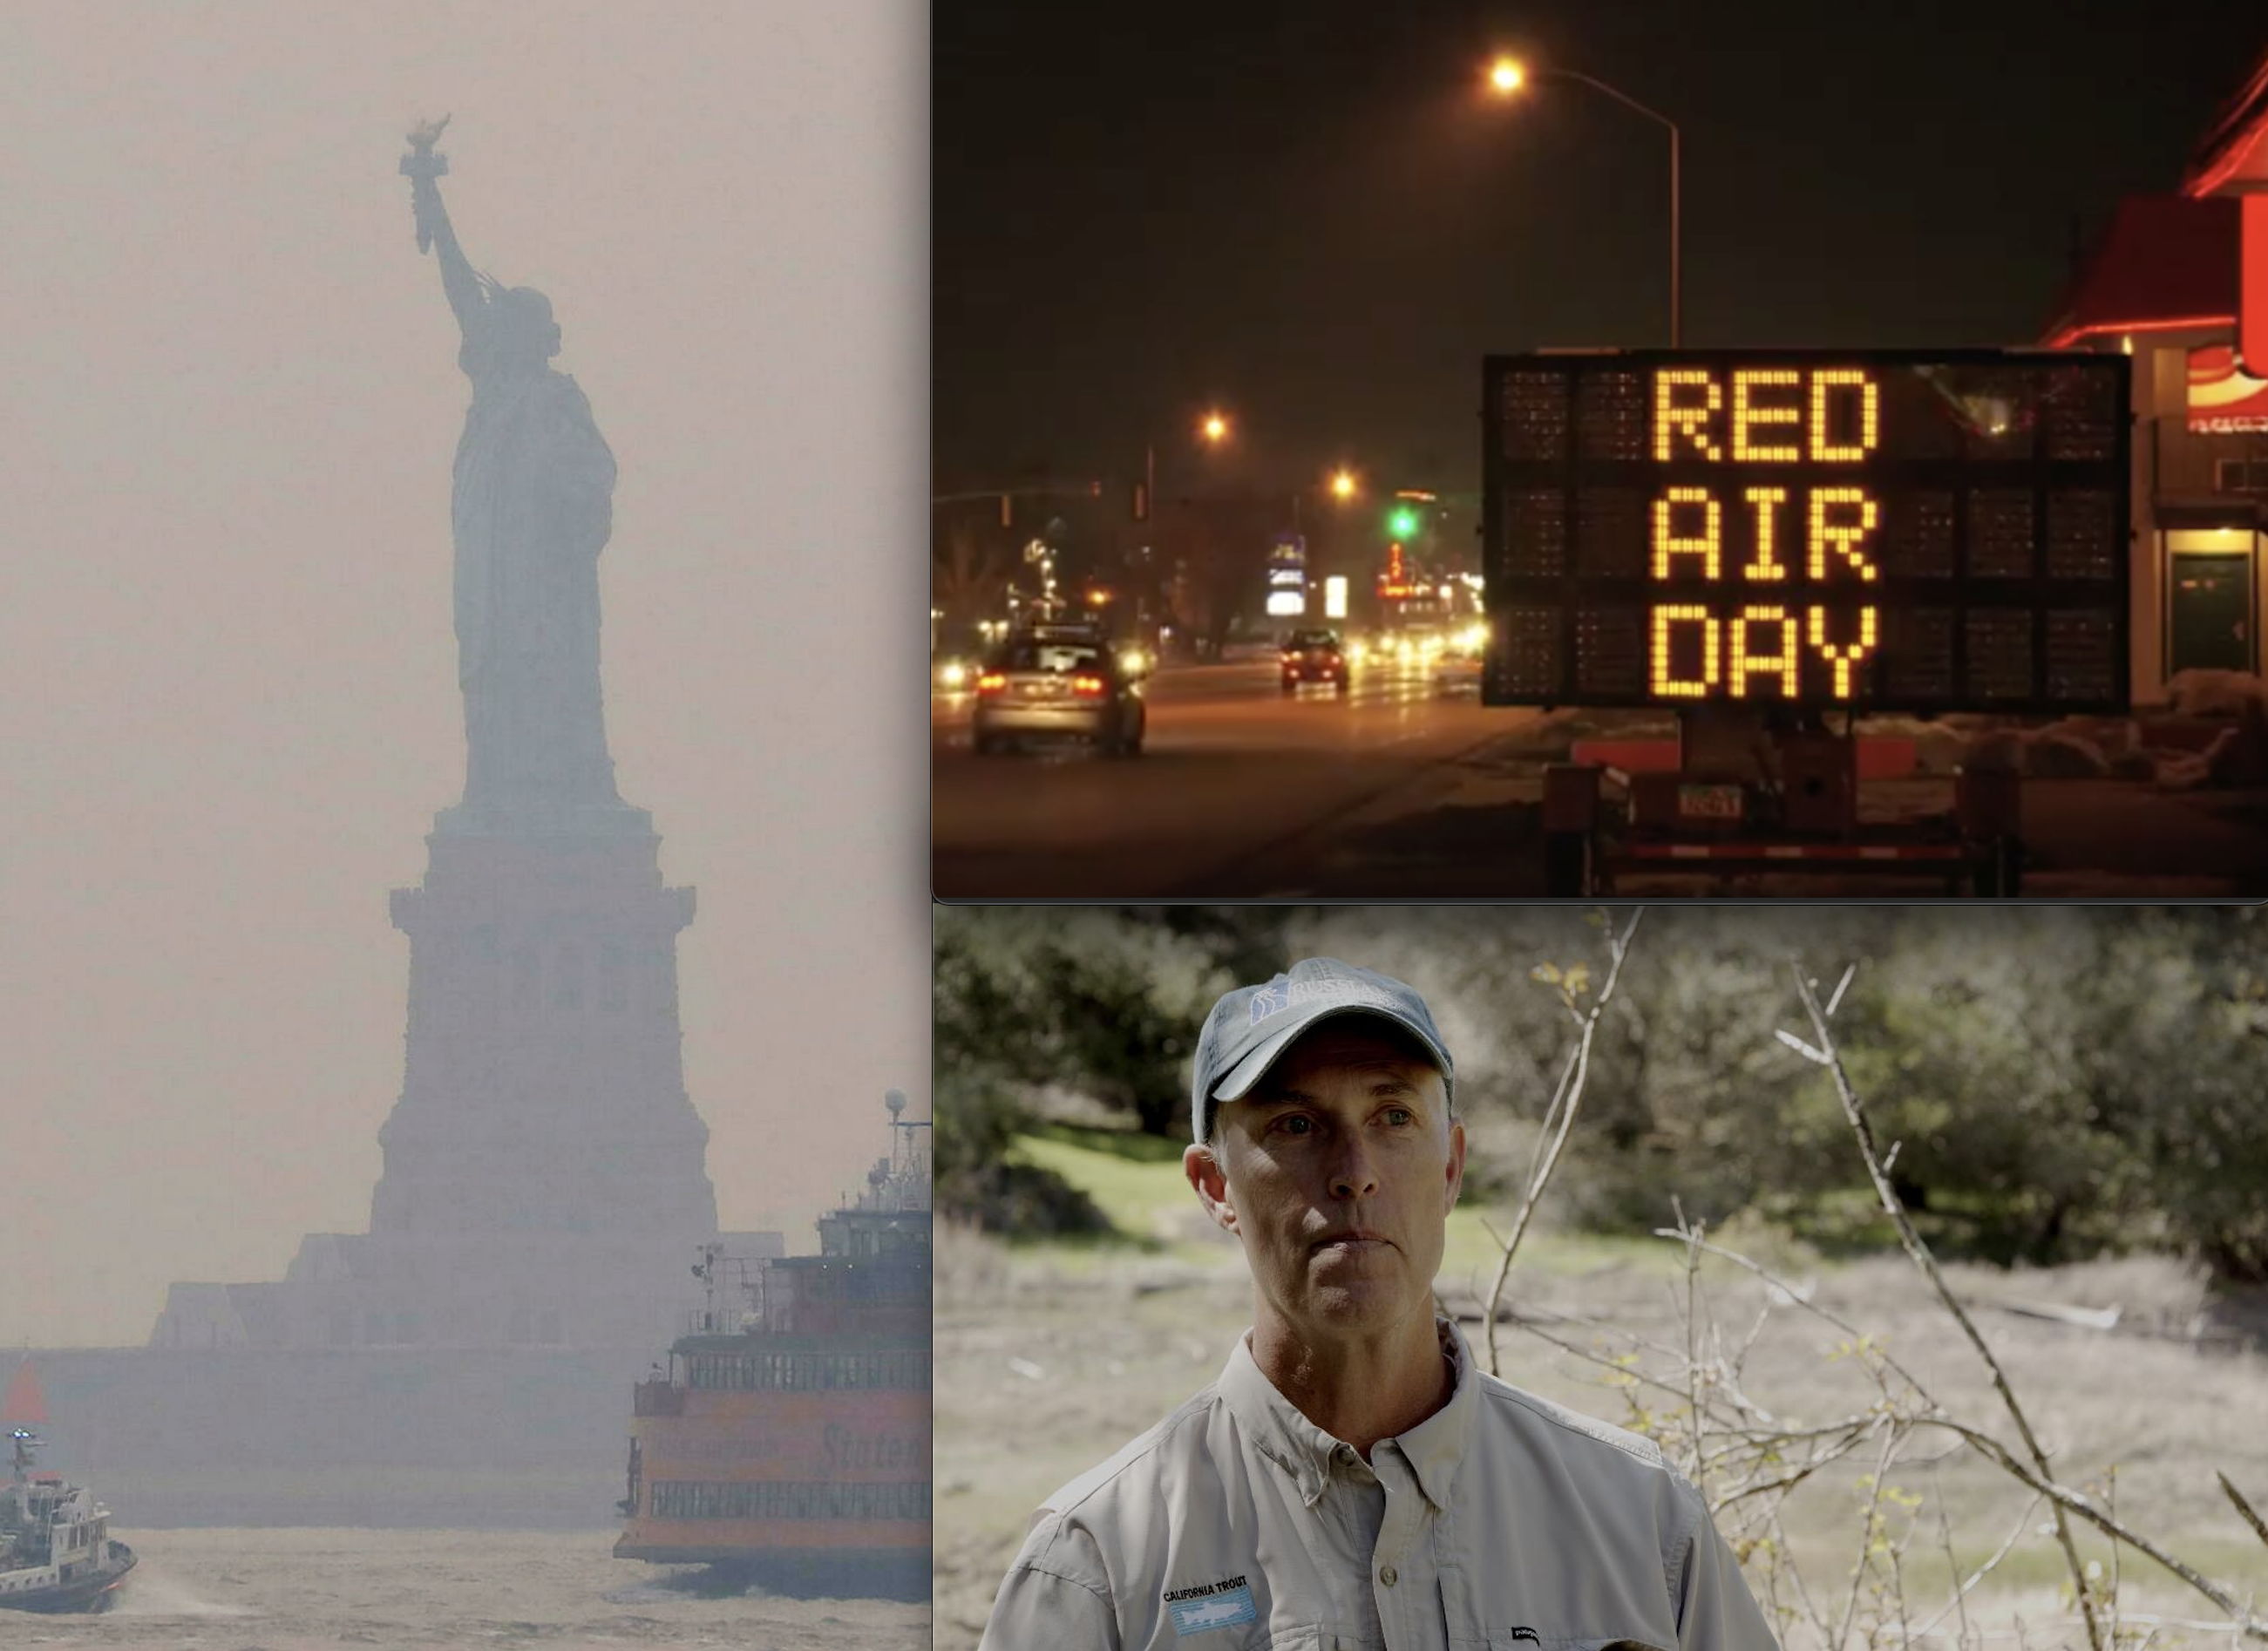 West Coast Wildfires Now Causing Dangerous New Seasonal Air Pollution Catastrophe Across America: CA's Rep. Jared Huffman Weighs in; Lawmakers Introduce Bills